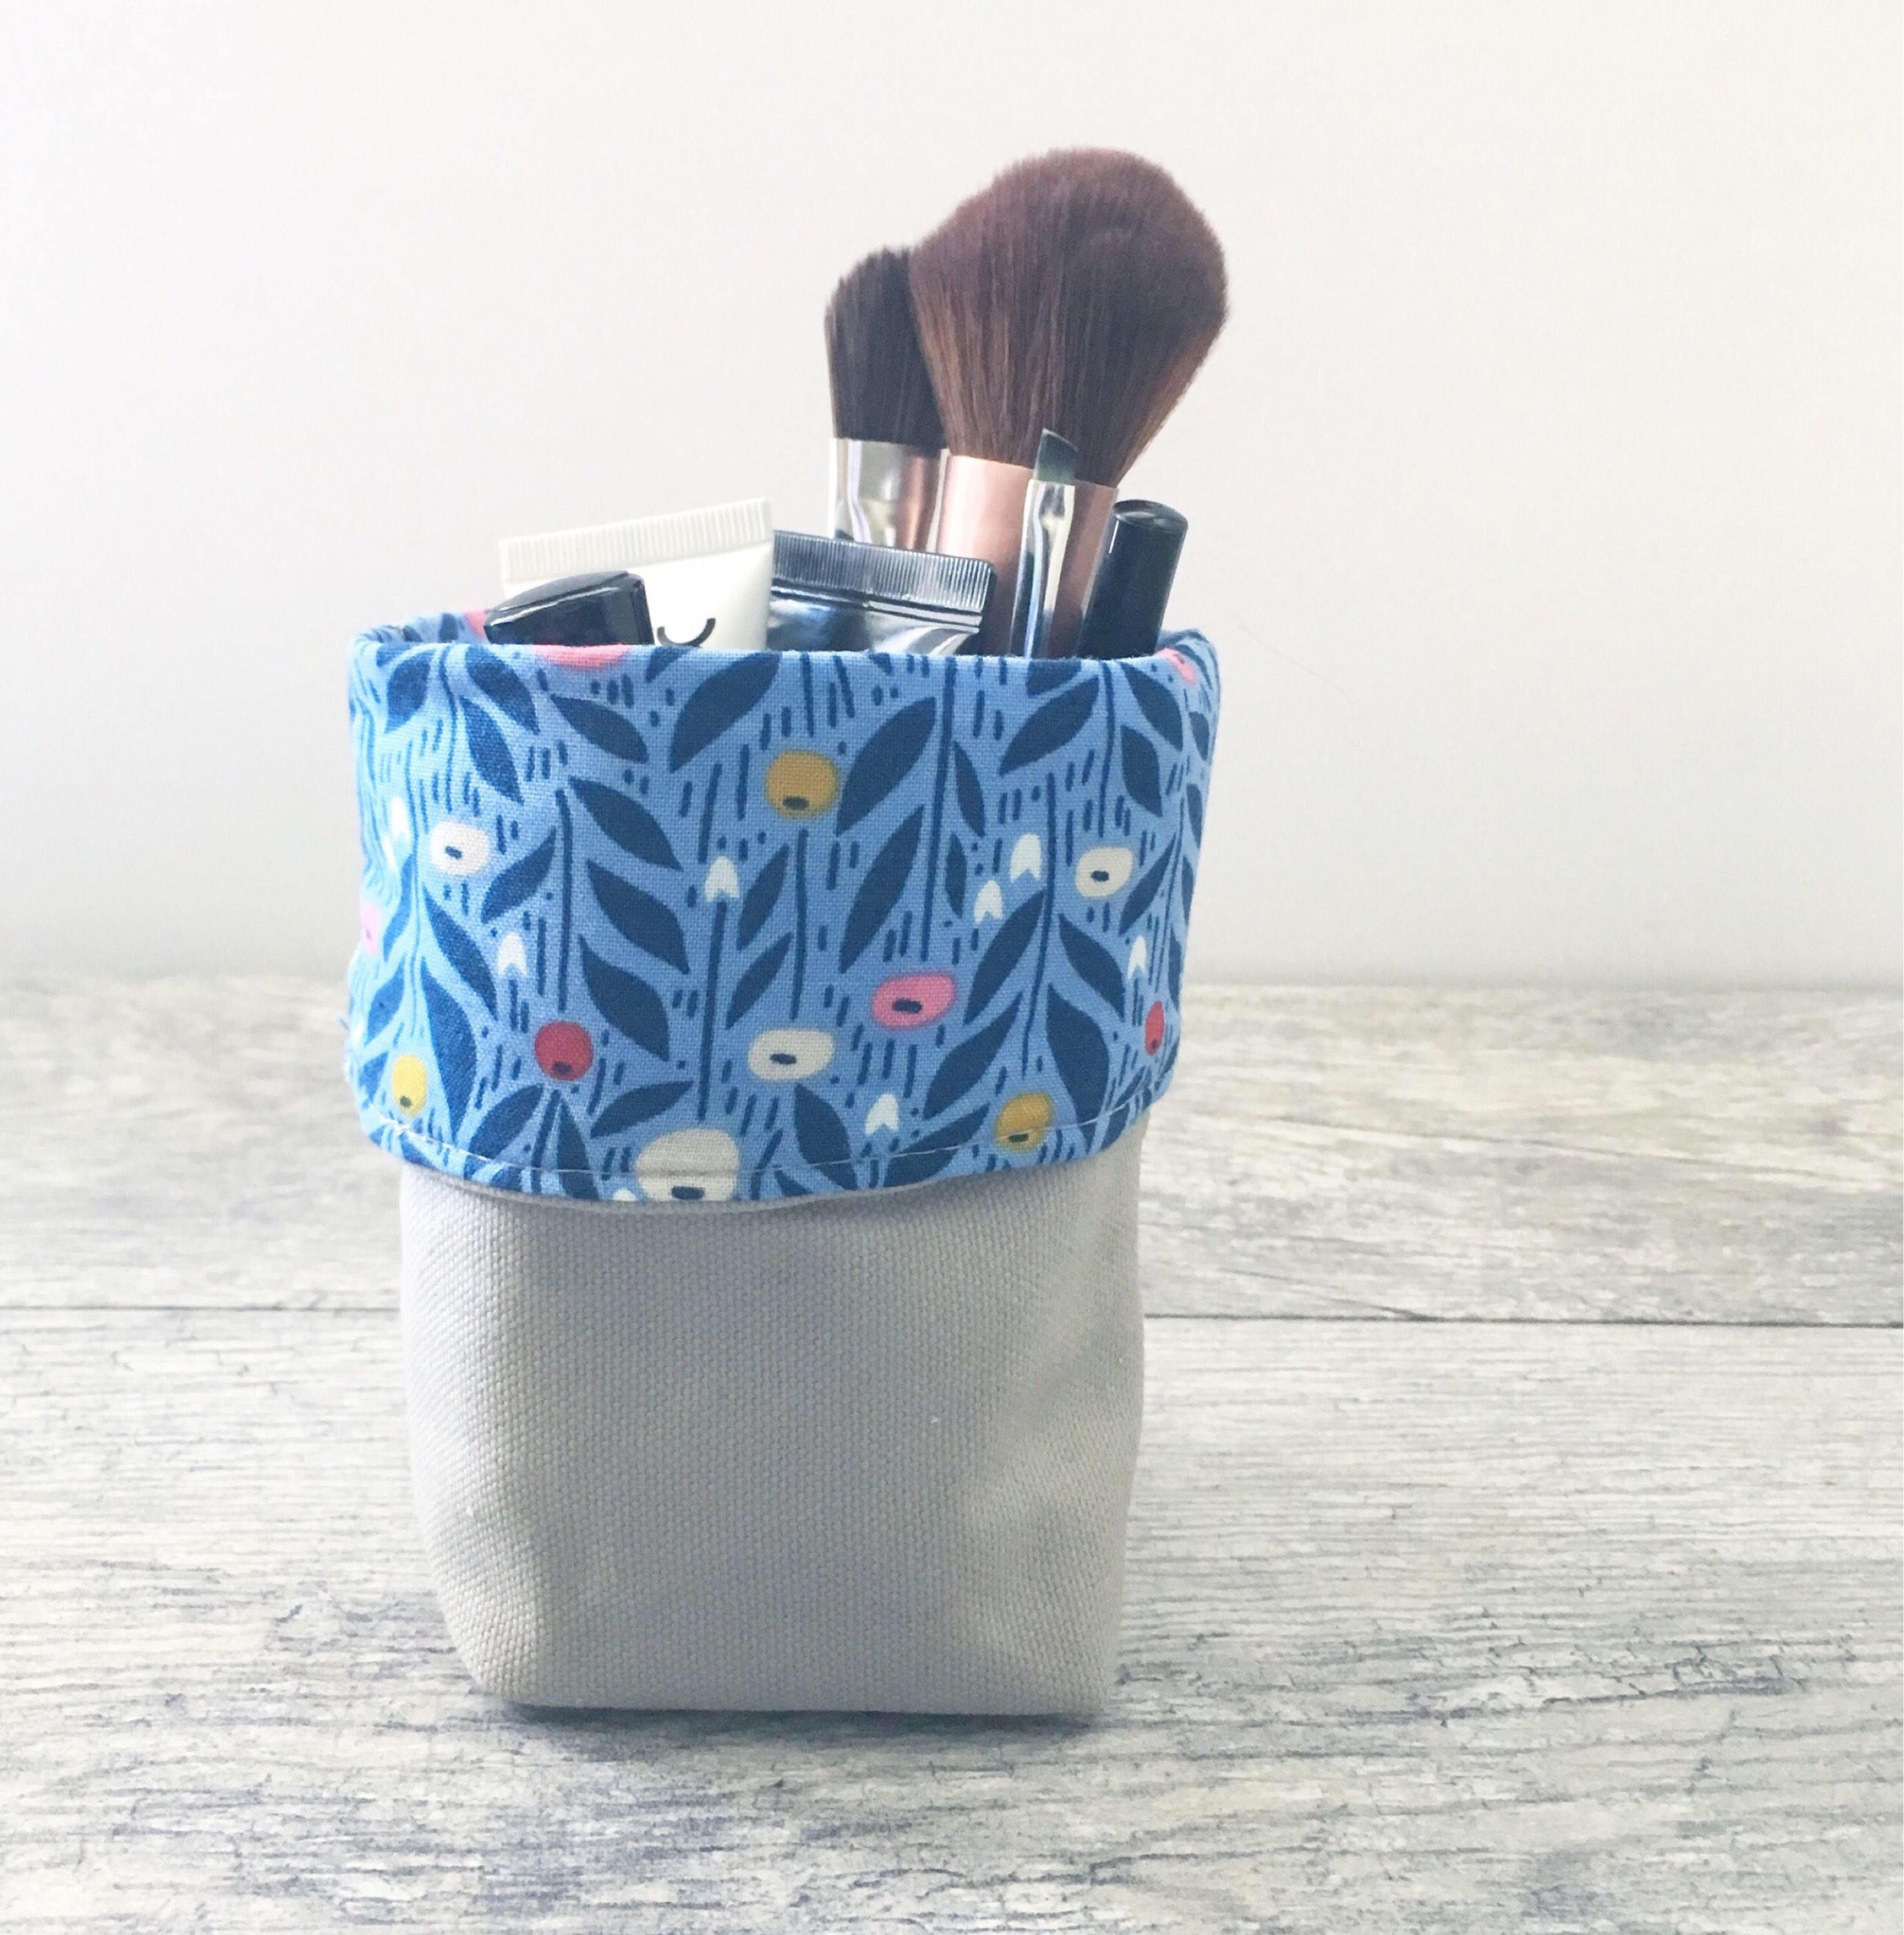 Makeup Brush Holder ~ Cosmetics Holder ~ Makeup Storage ~